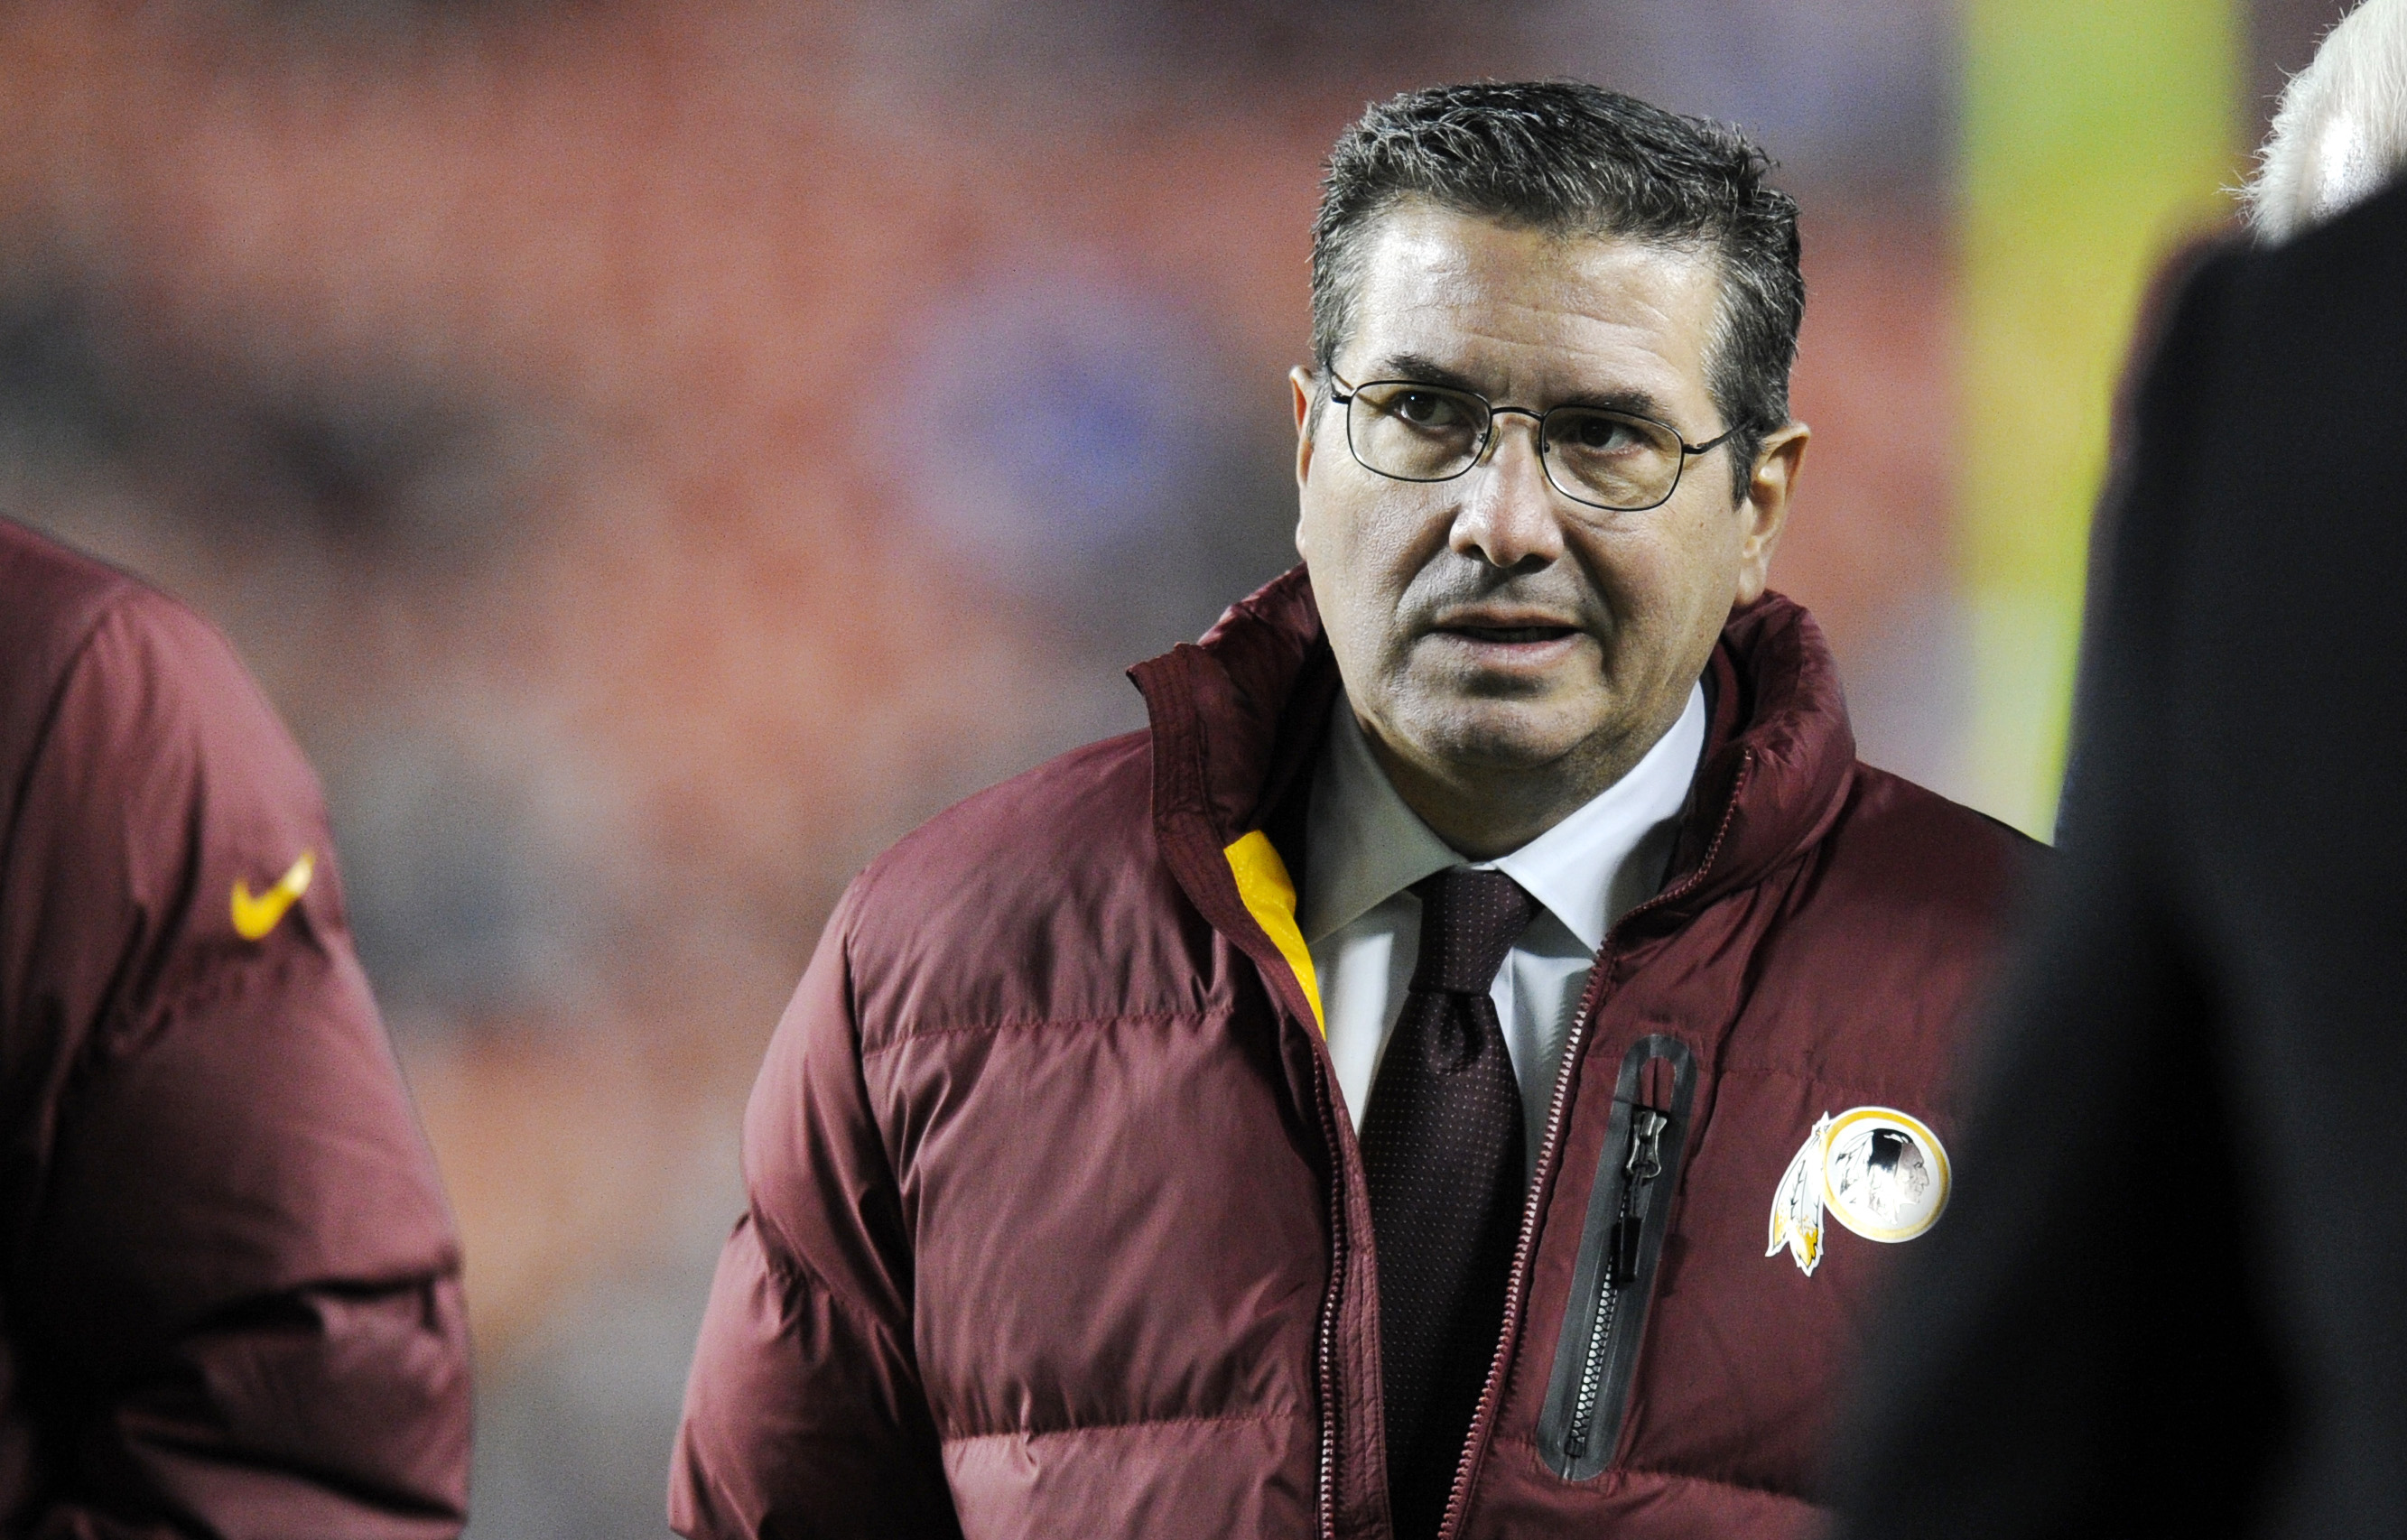 FILE - In this Dec. 1, 2013, file photo, Washington Redskins owner Dan Snyder walks off the field before an NFL football game against the New York Giants in Landover, Md. Washington Redskins owner Dan Snyder said Tuesday, April 22, 2014, it's time for peo